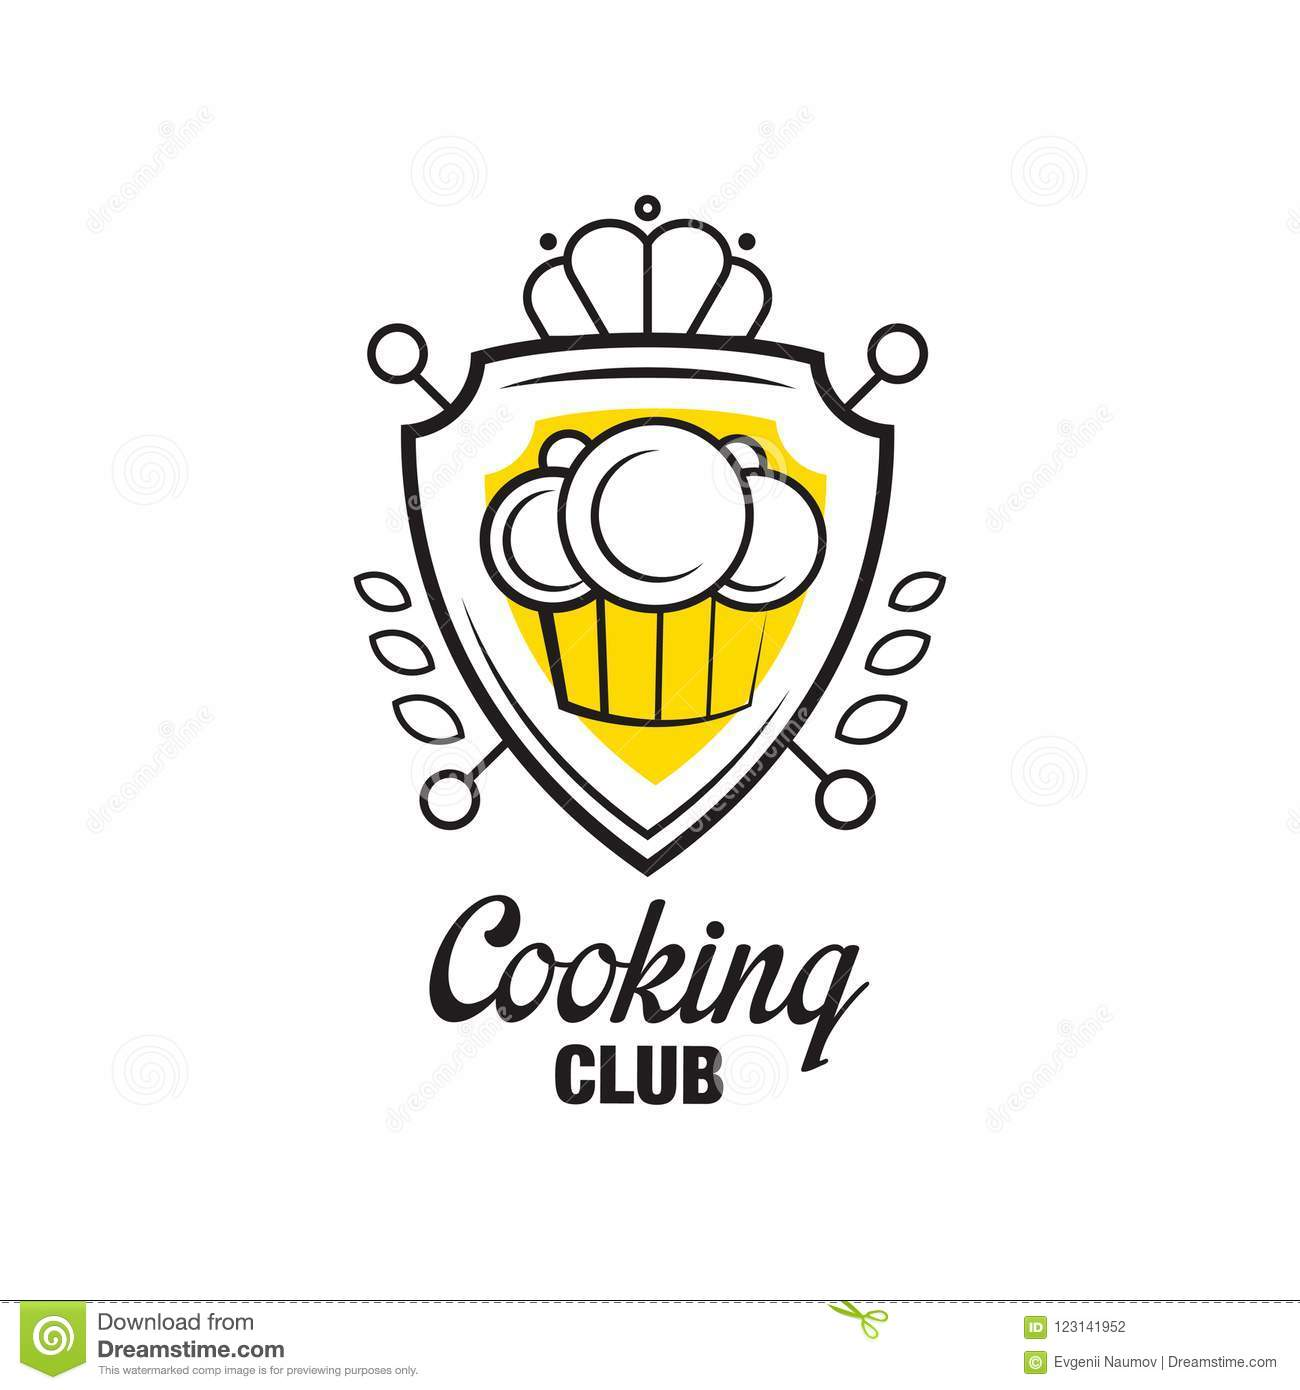 Cooking Club Logo Design Heraldic Shield With Chef Hat Badge Can